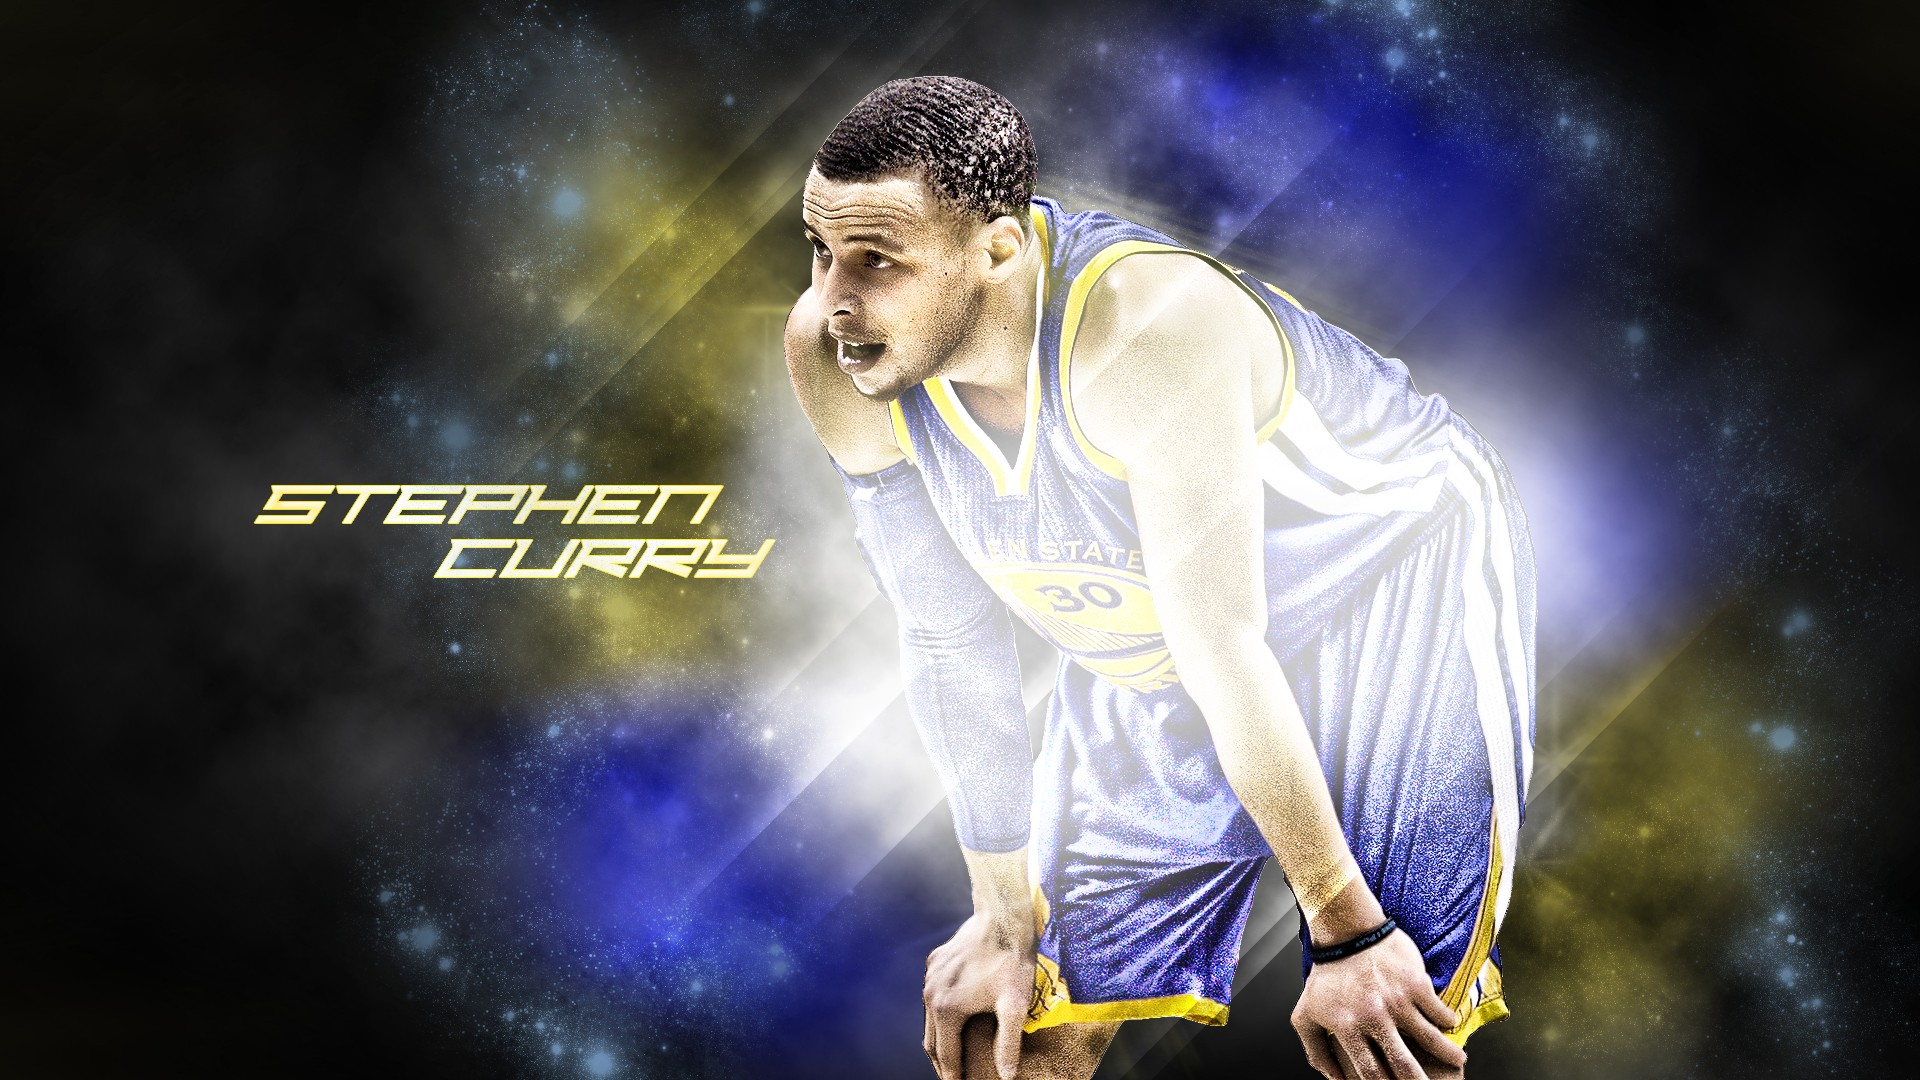 Download Stephen Curry Wallpaper 1920x1080